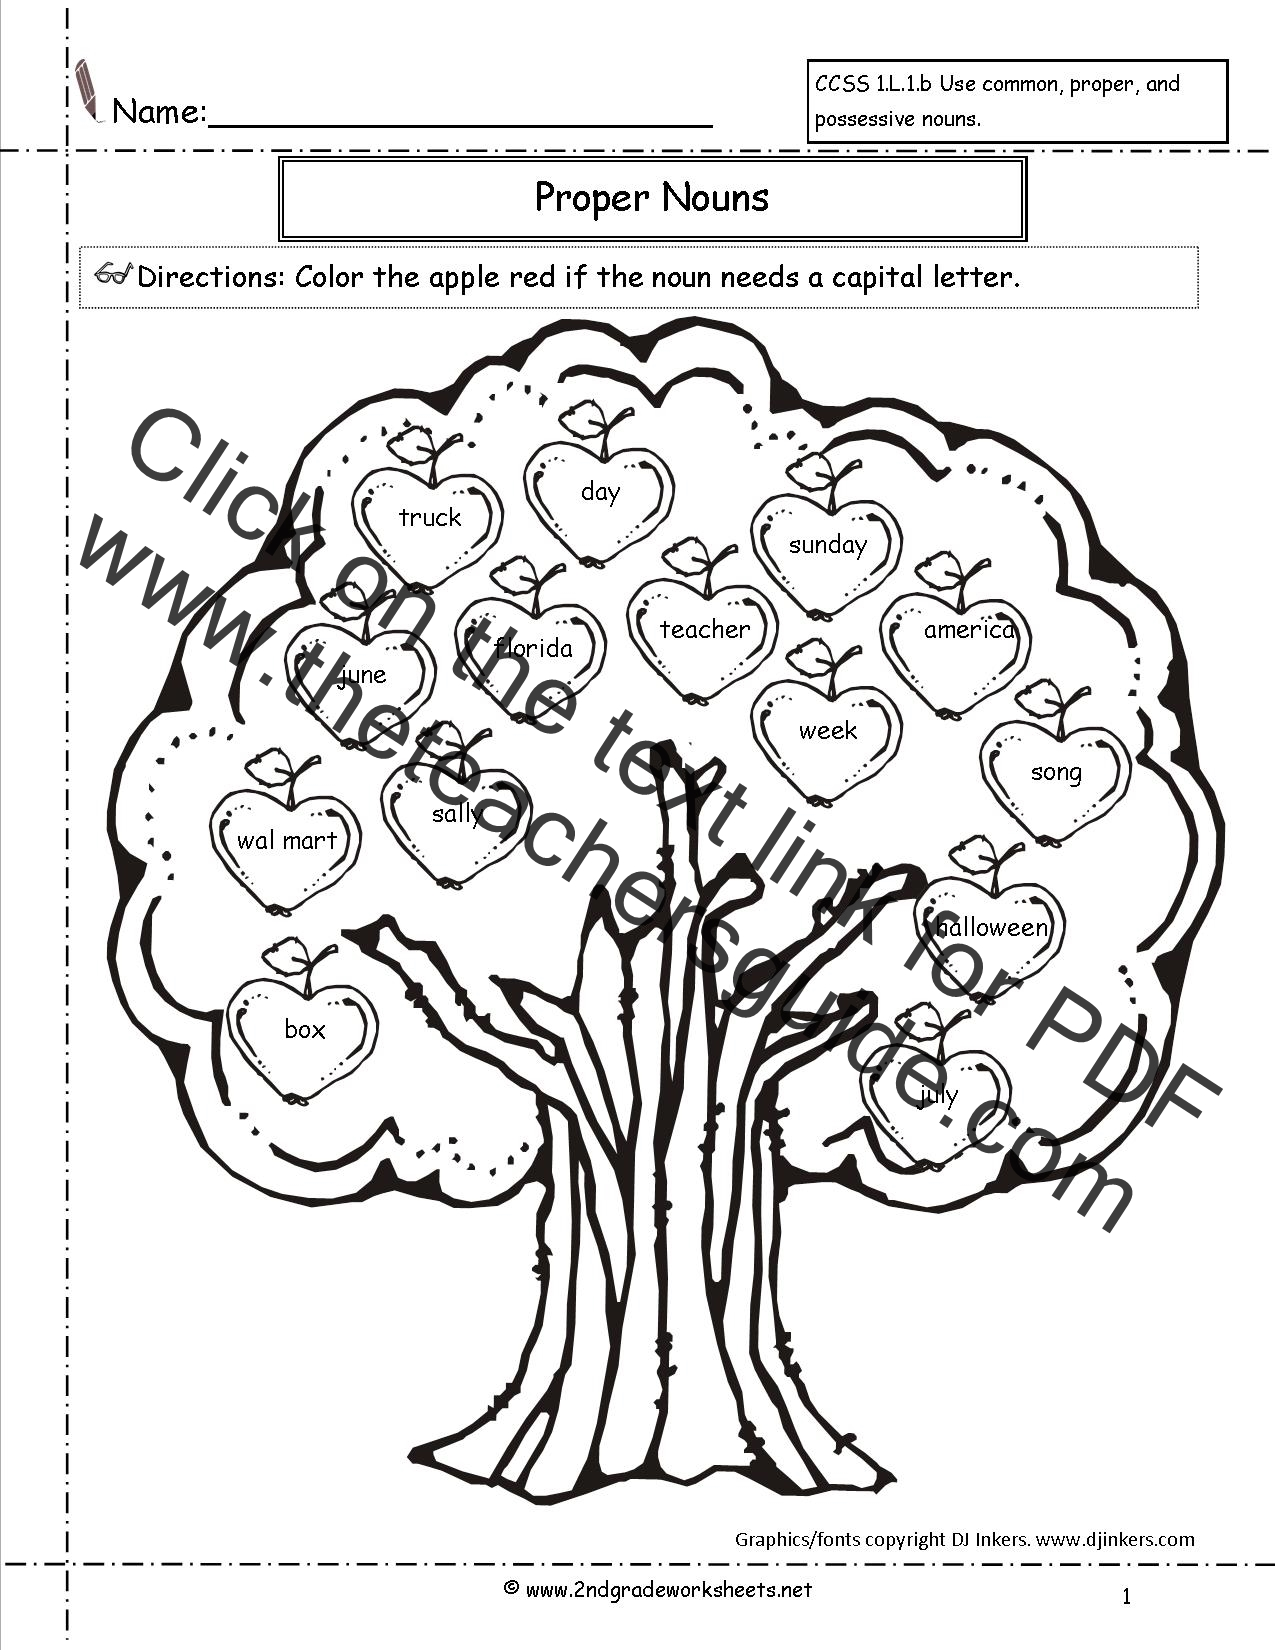 Common and Proper Nouns Worksheet – Proper Noun Worksheets